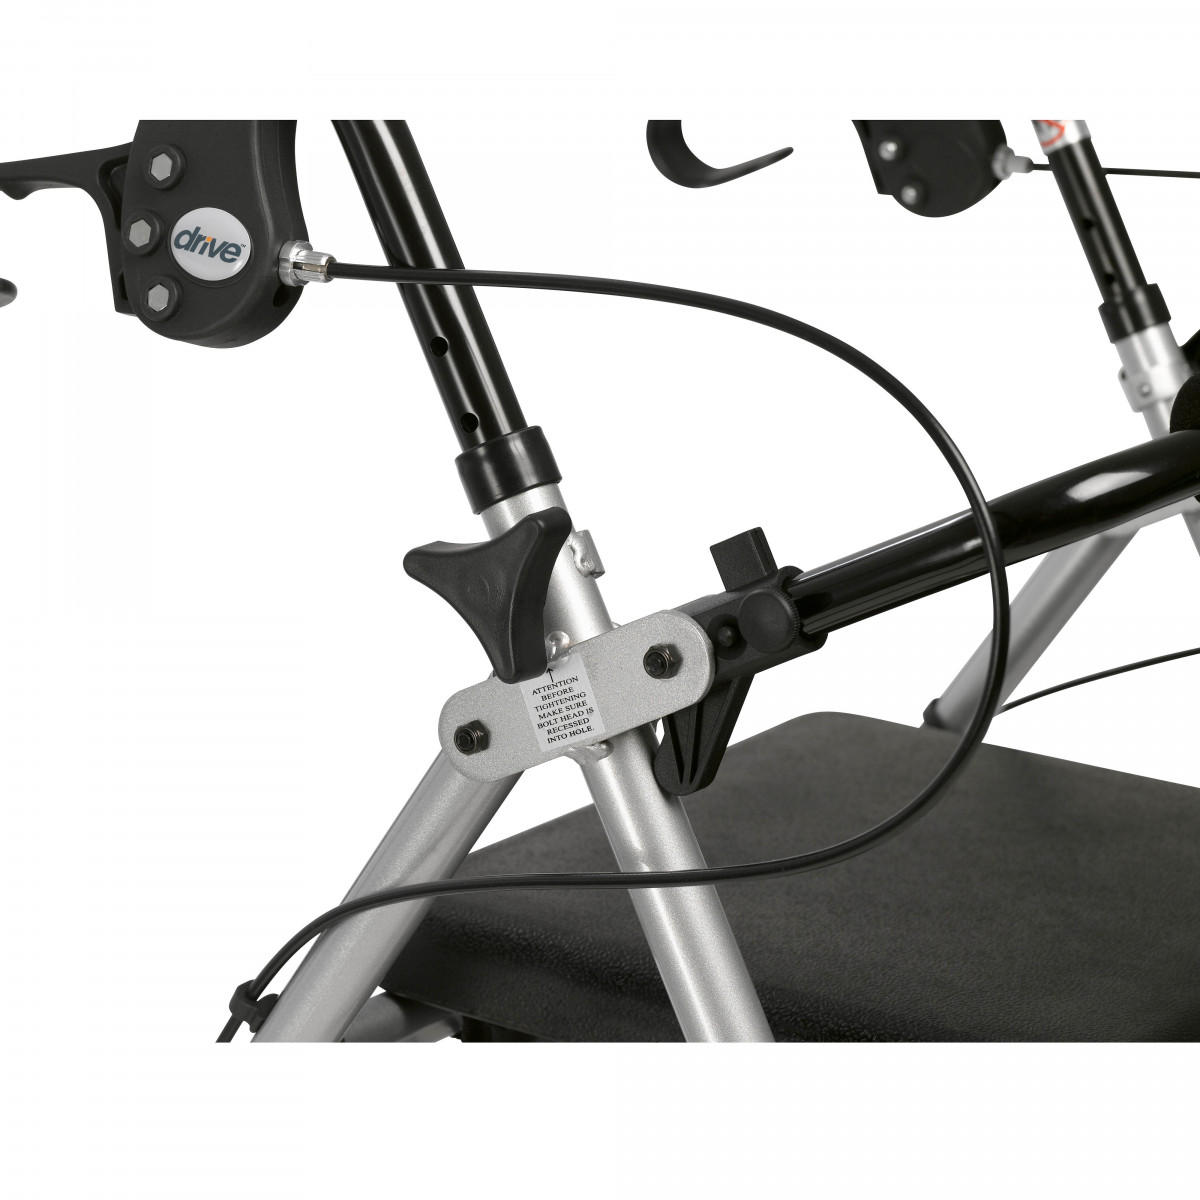 lightweight rollator with fold up and removable back support by drive 8df